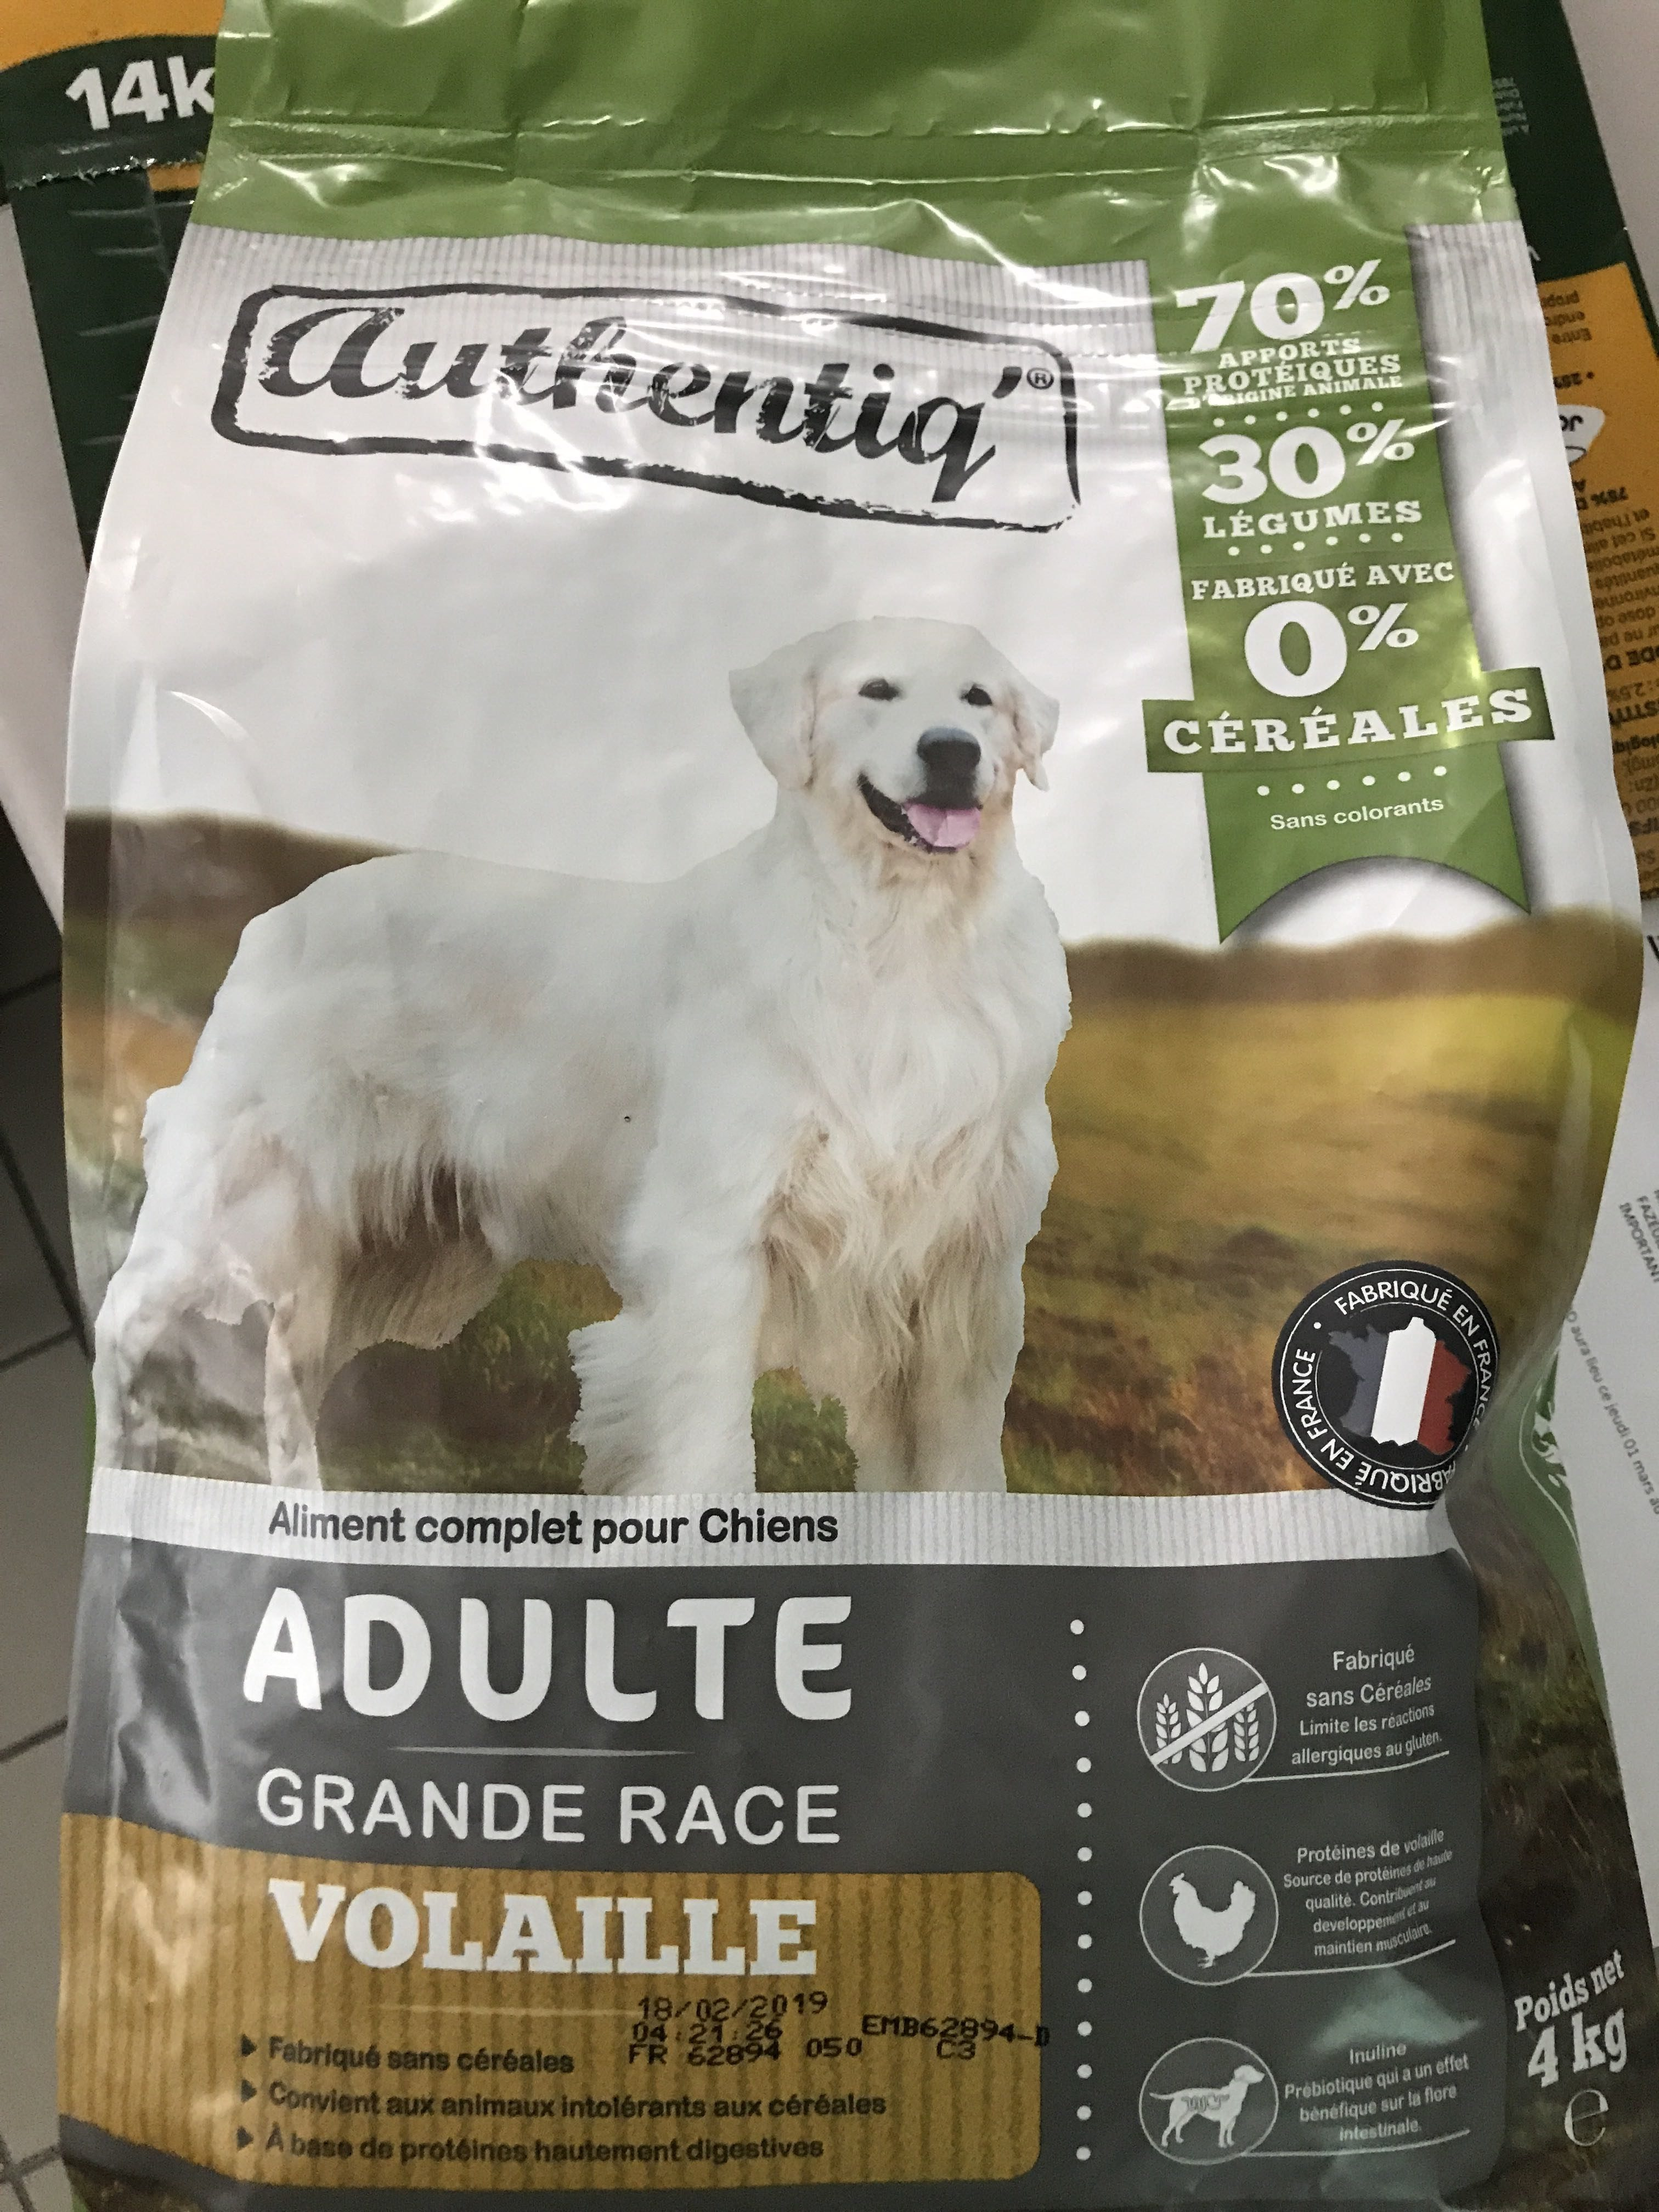 AUTHENTIQ' adulte grande race - Product - fr